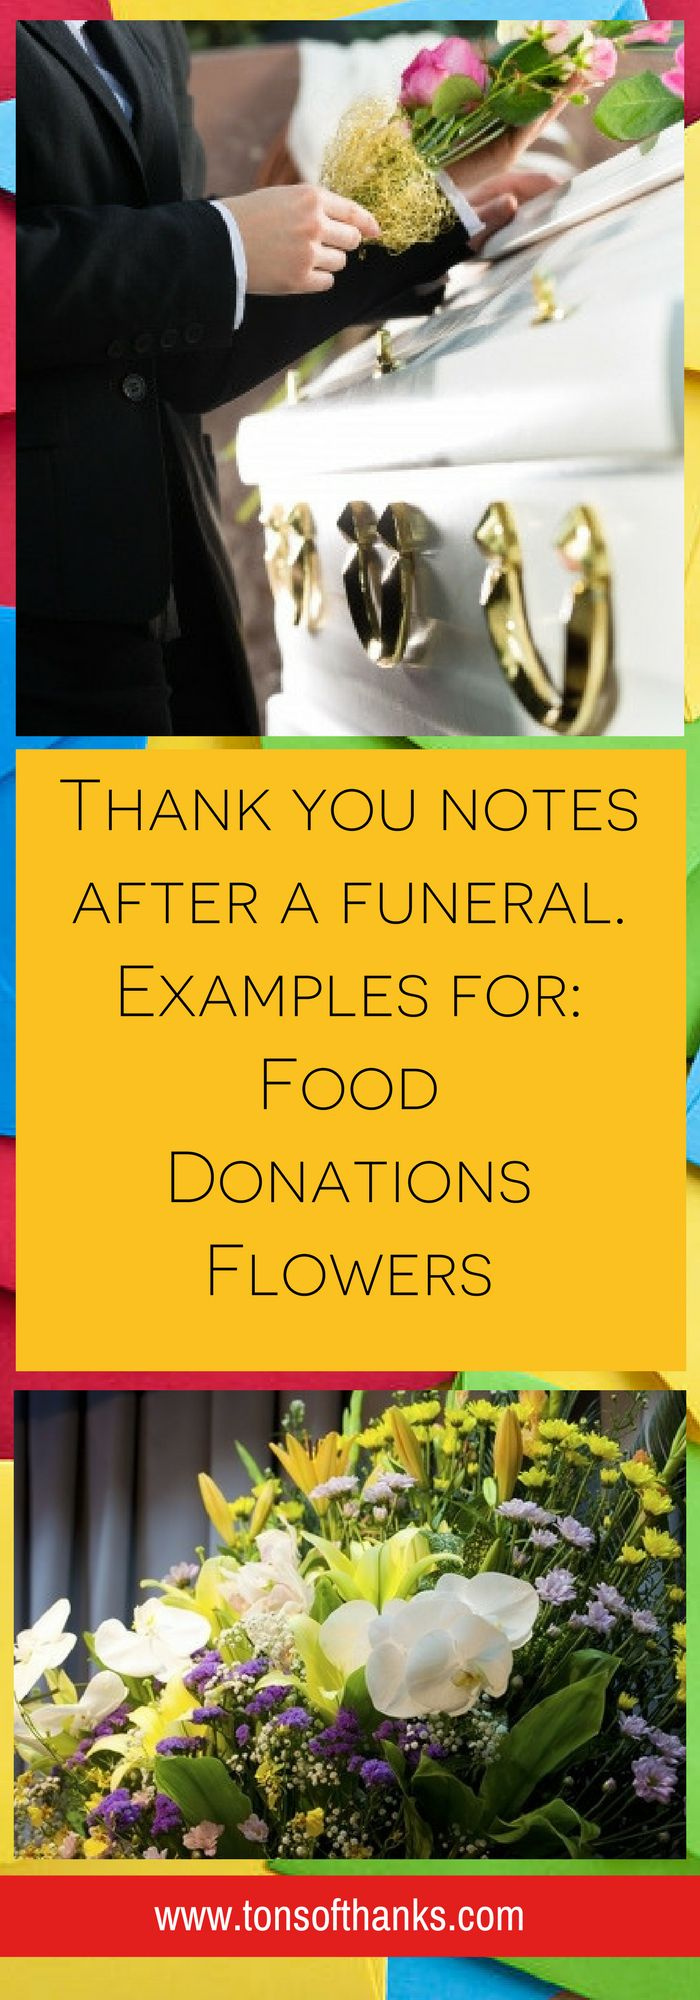 how to write thank you notes for wedding gift cards%0A   Sample Funeral Thank You Cards Pinteres Note Wording Examples For After  Flowers Donations And Food    Best Free Home Design Idea  u     Inspiration